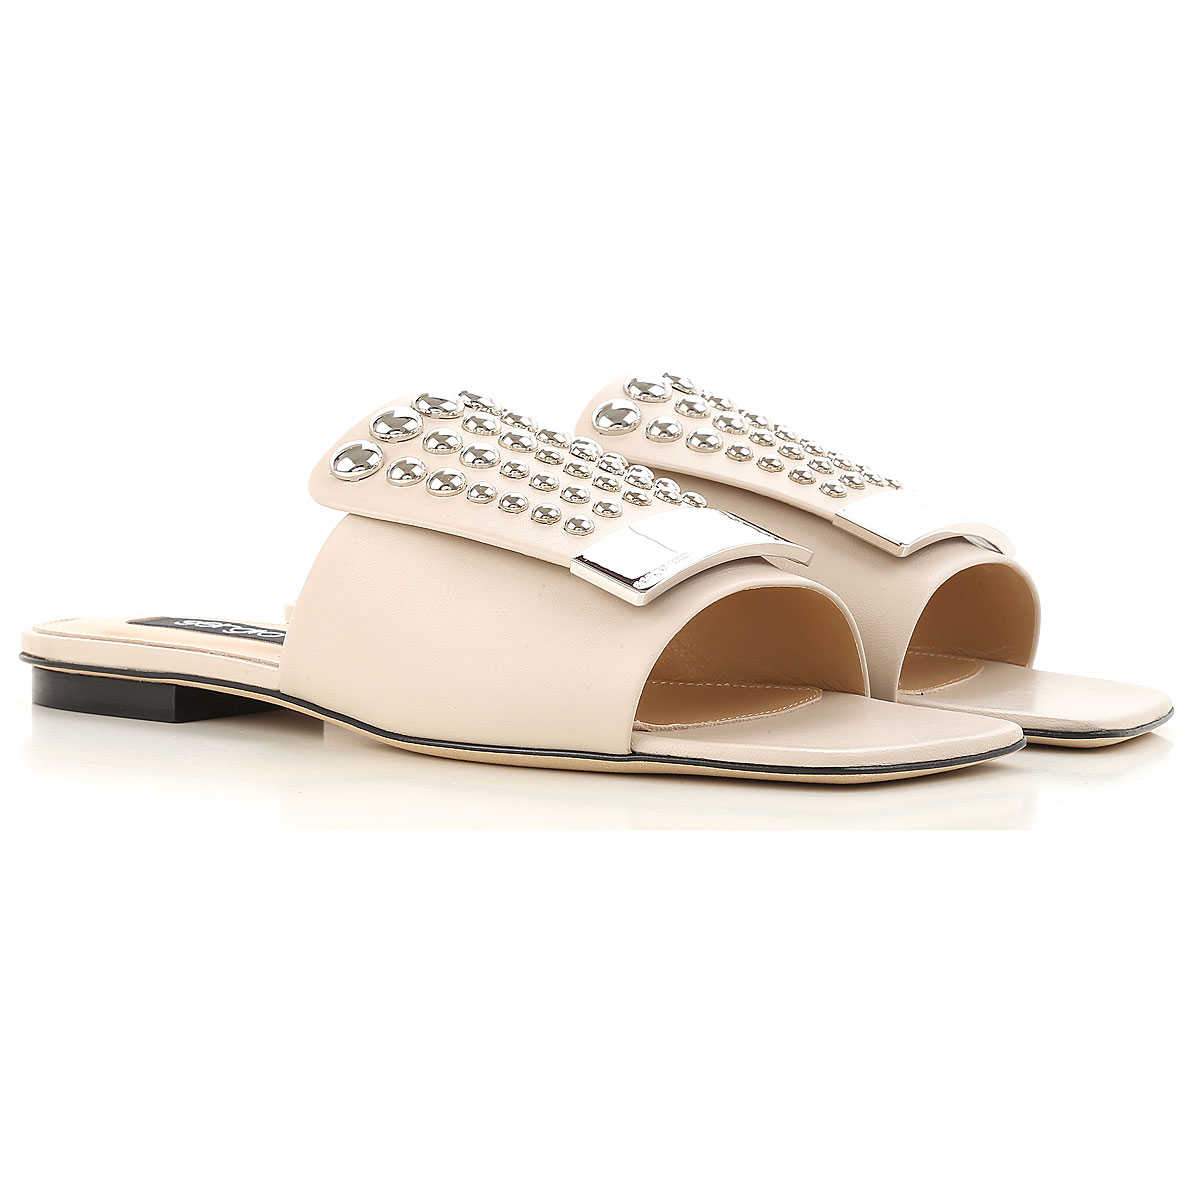 Sergio Rossi Sandals for Women On Sale in Outlet